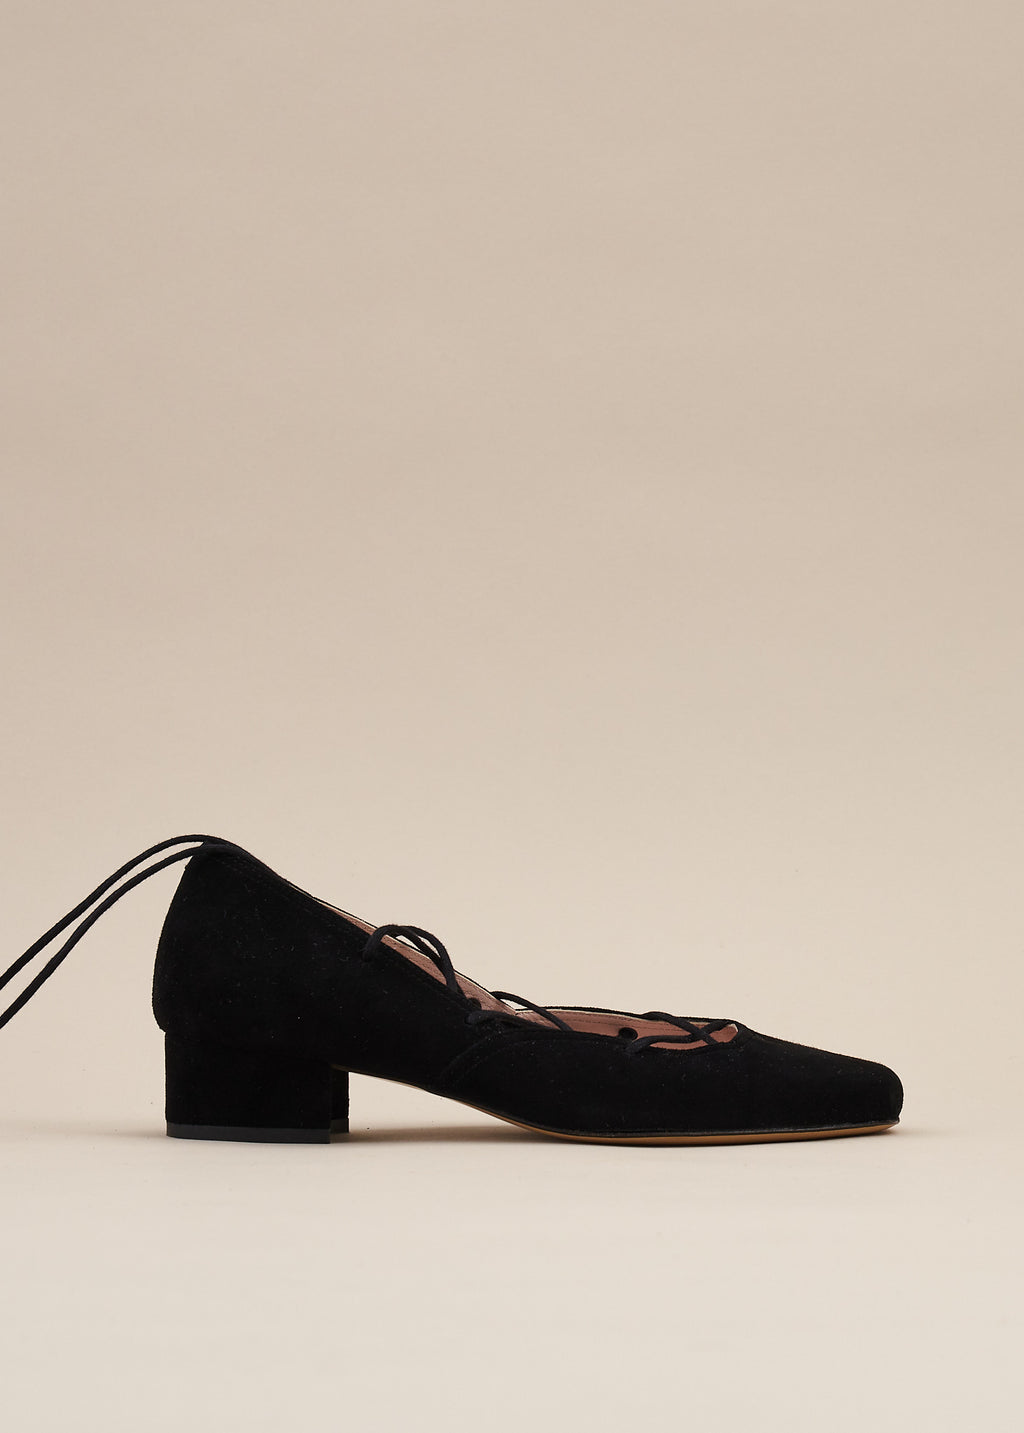 Elinor Black Suede Lace-up Ballerina Pump - LAST REMAINING PAIRS